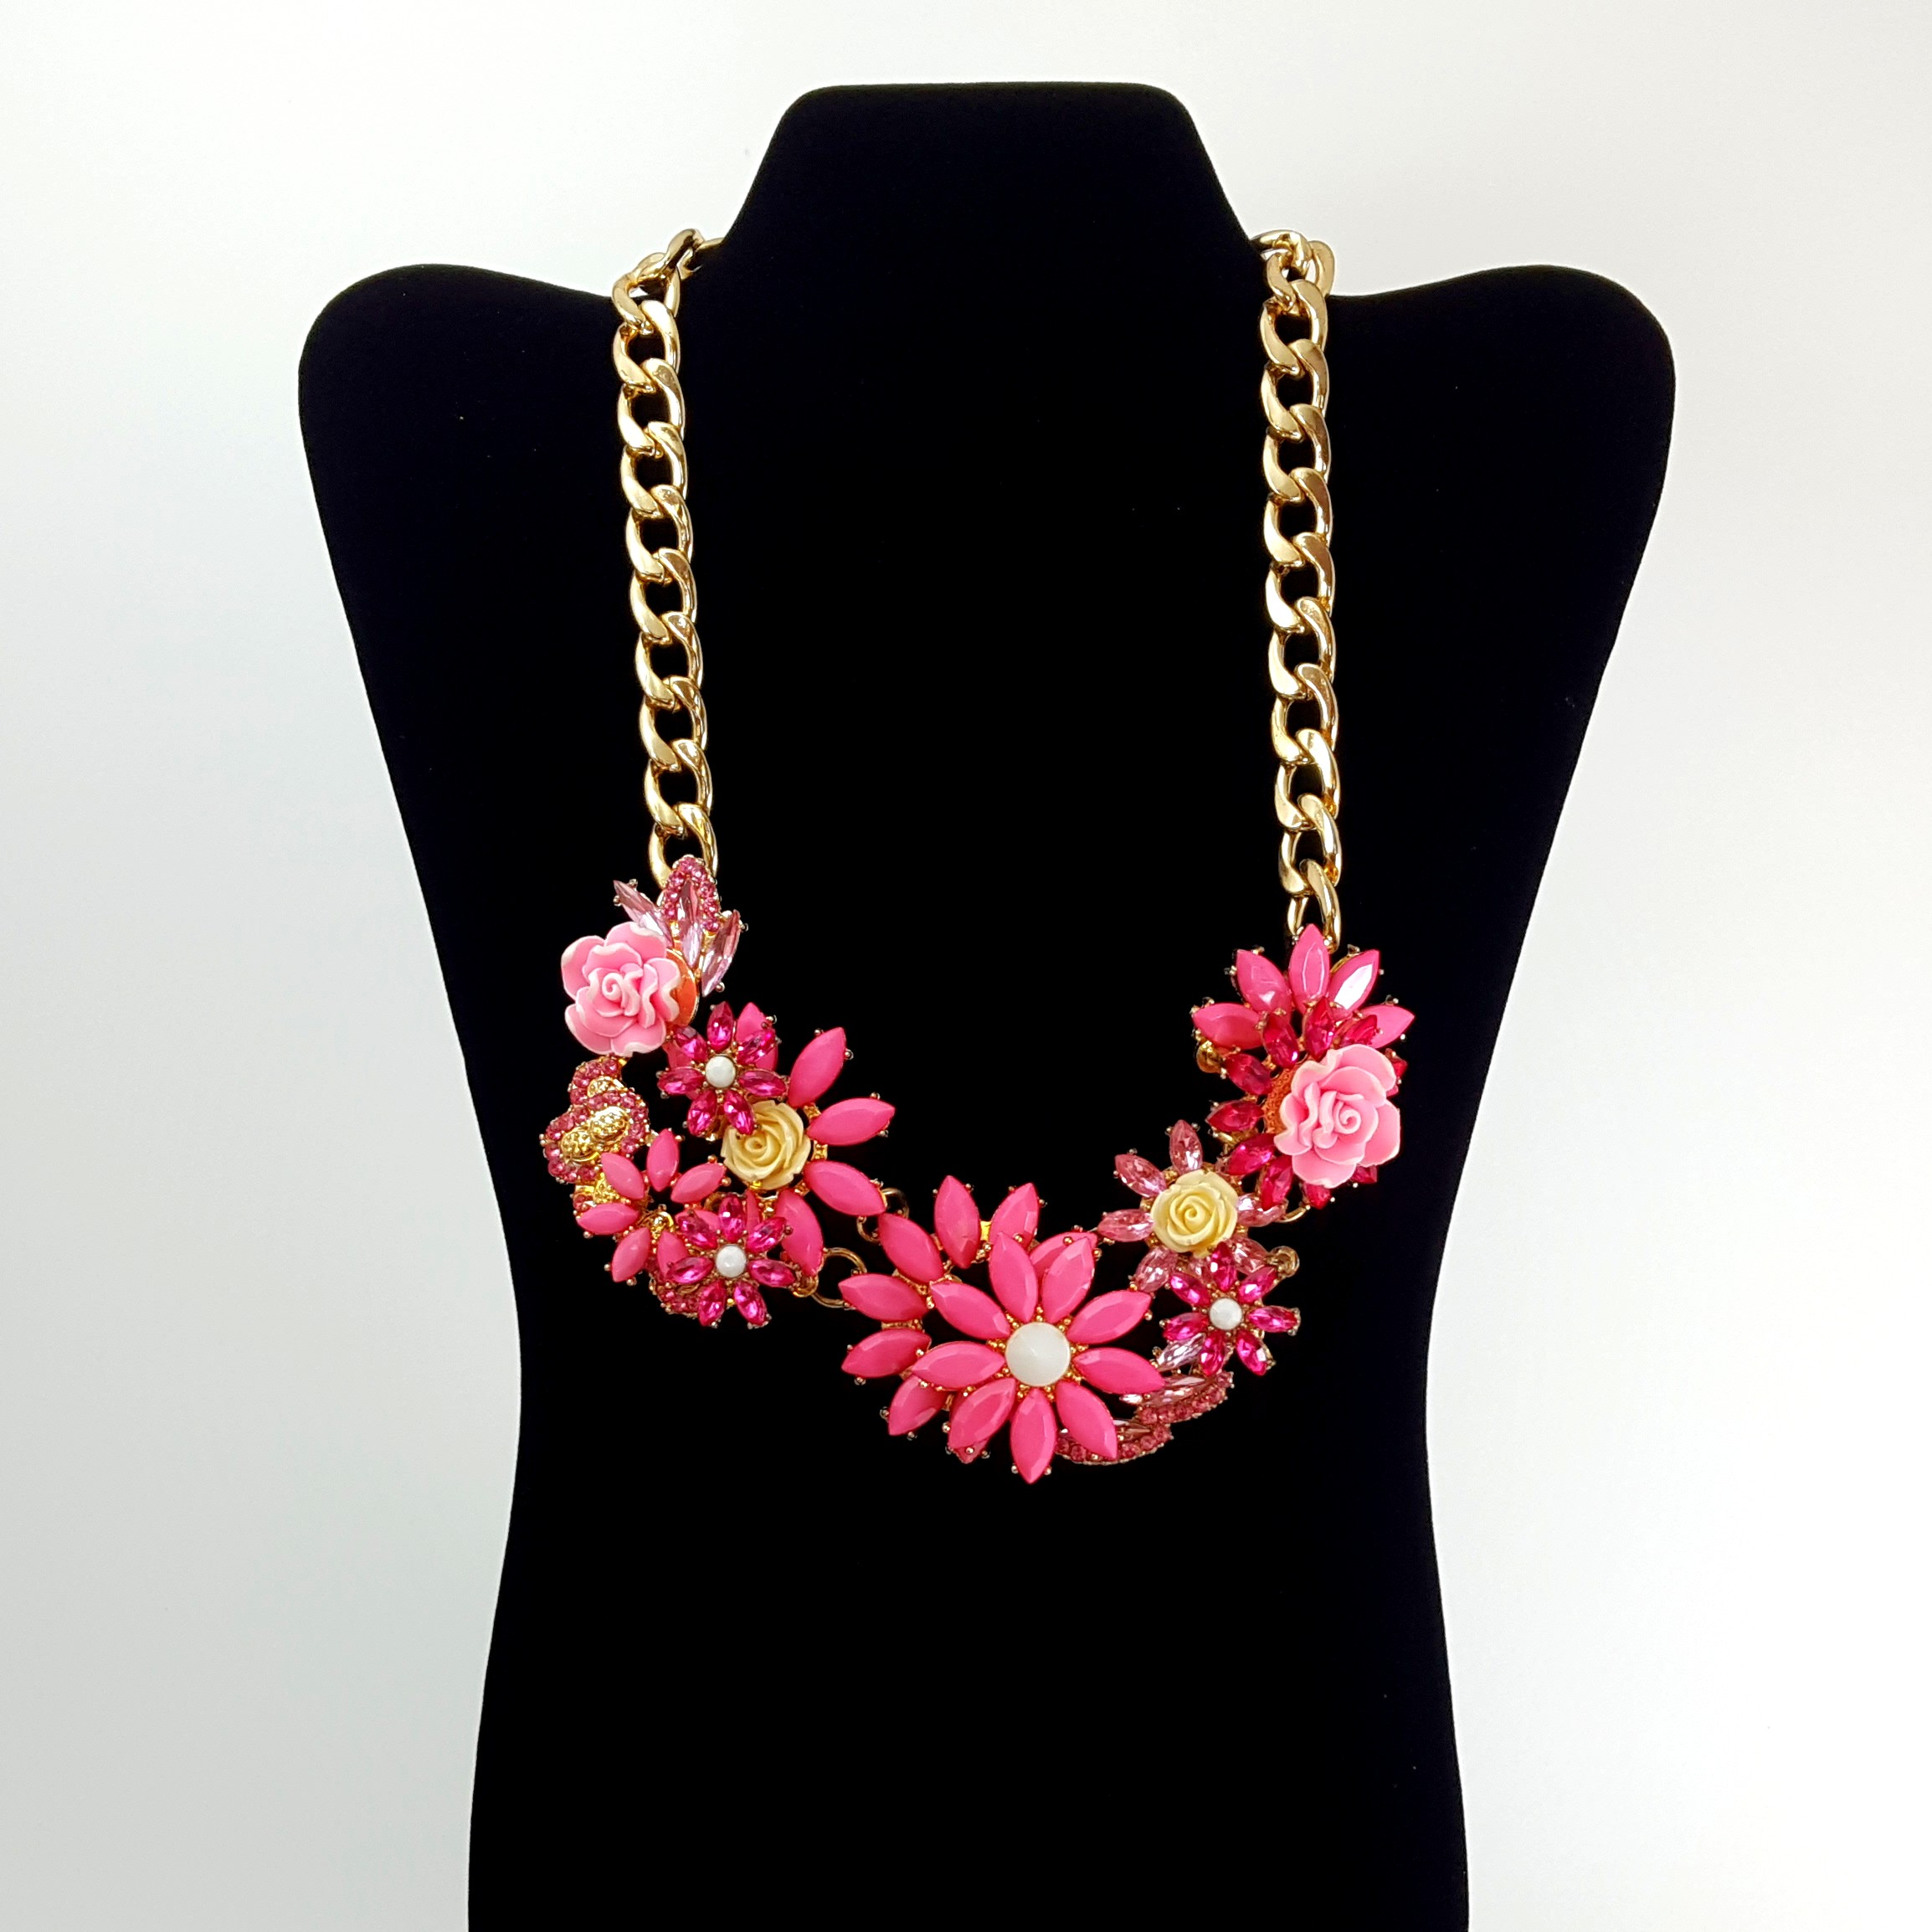 Charming Charlie Chunky Pink Floral Statement Necklace